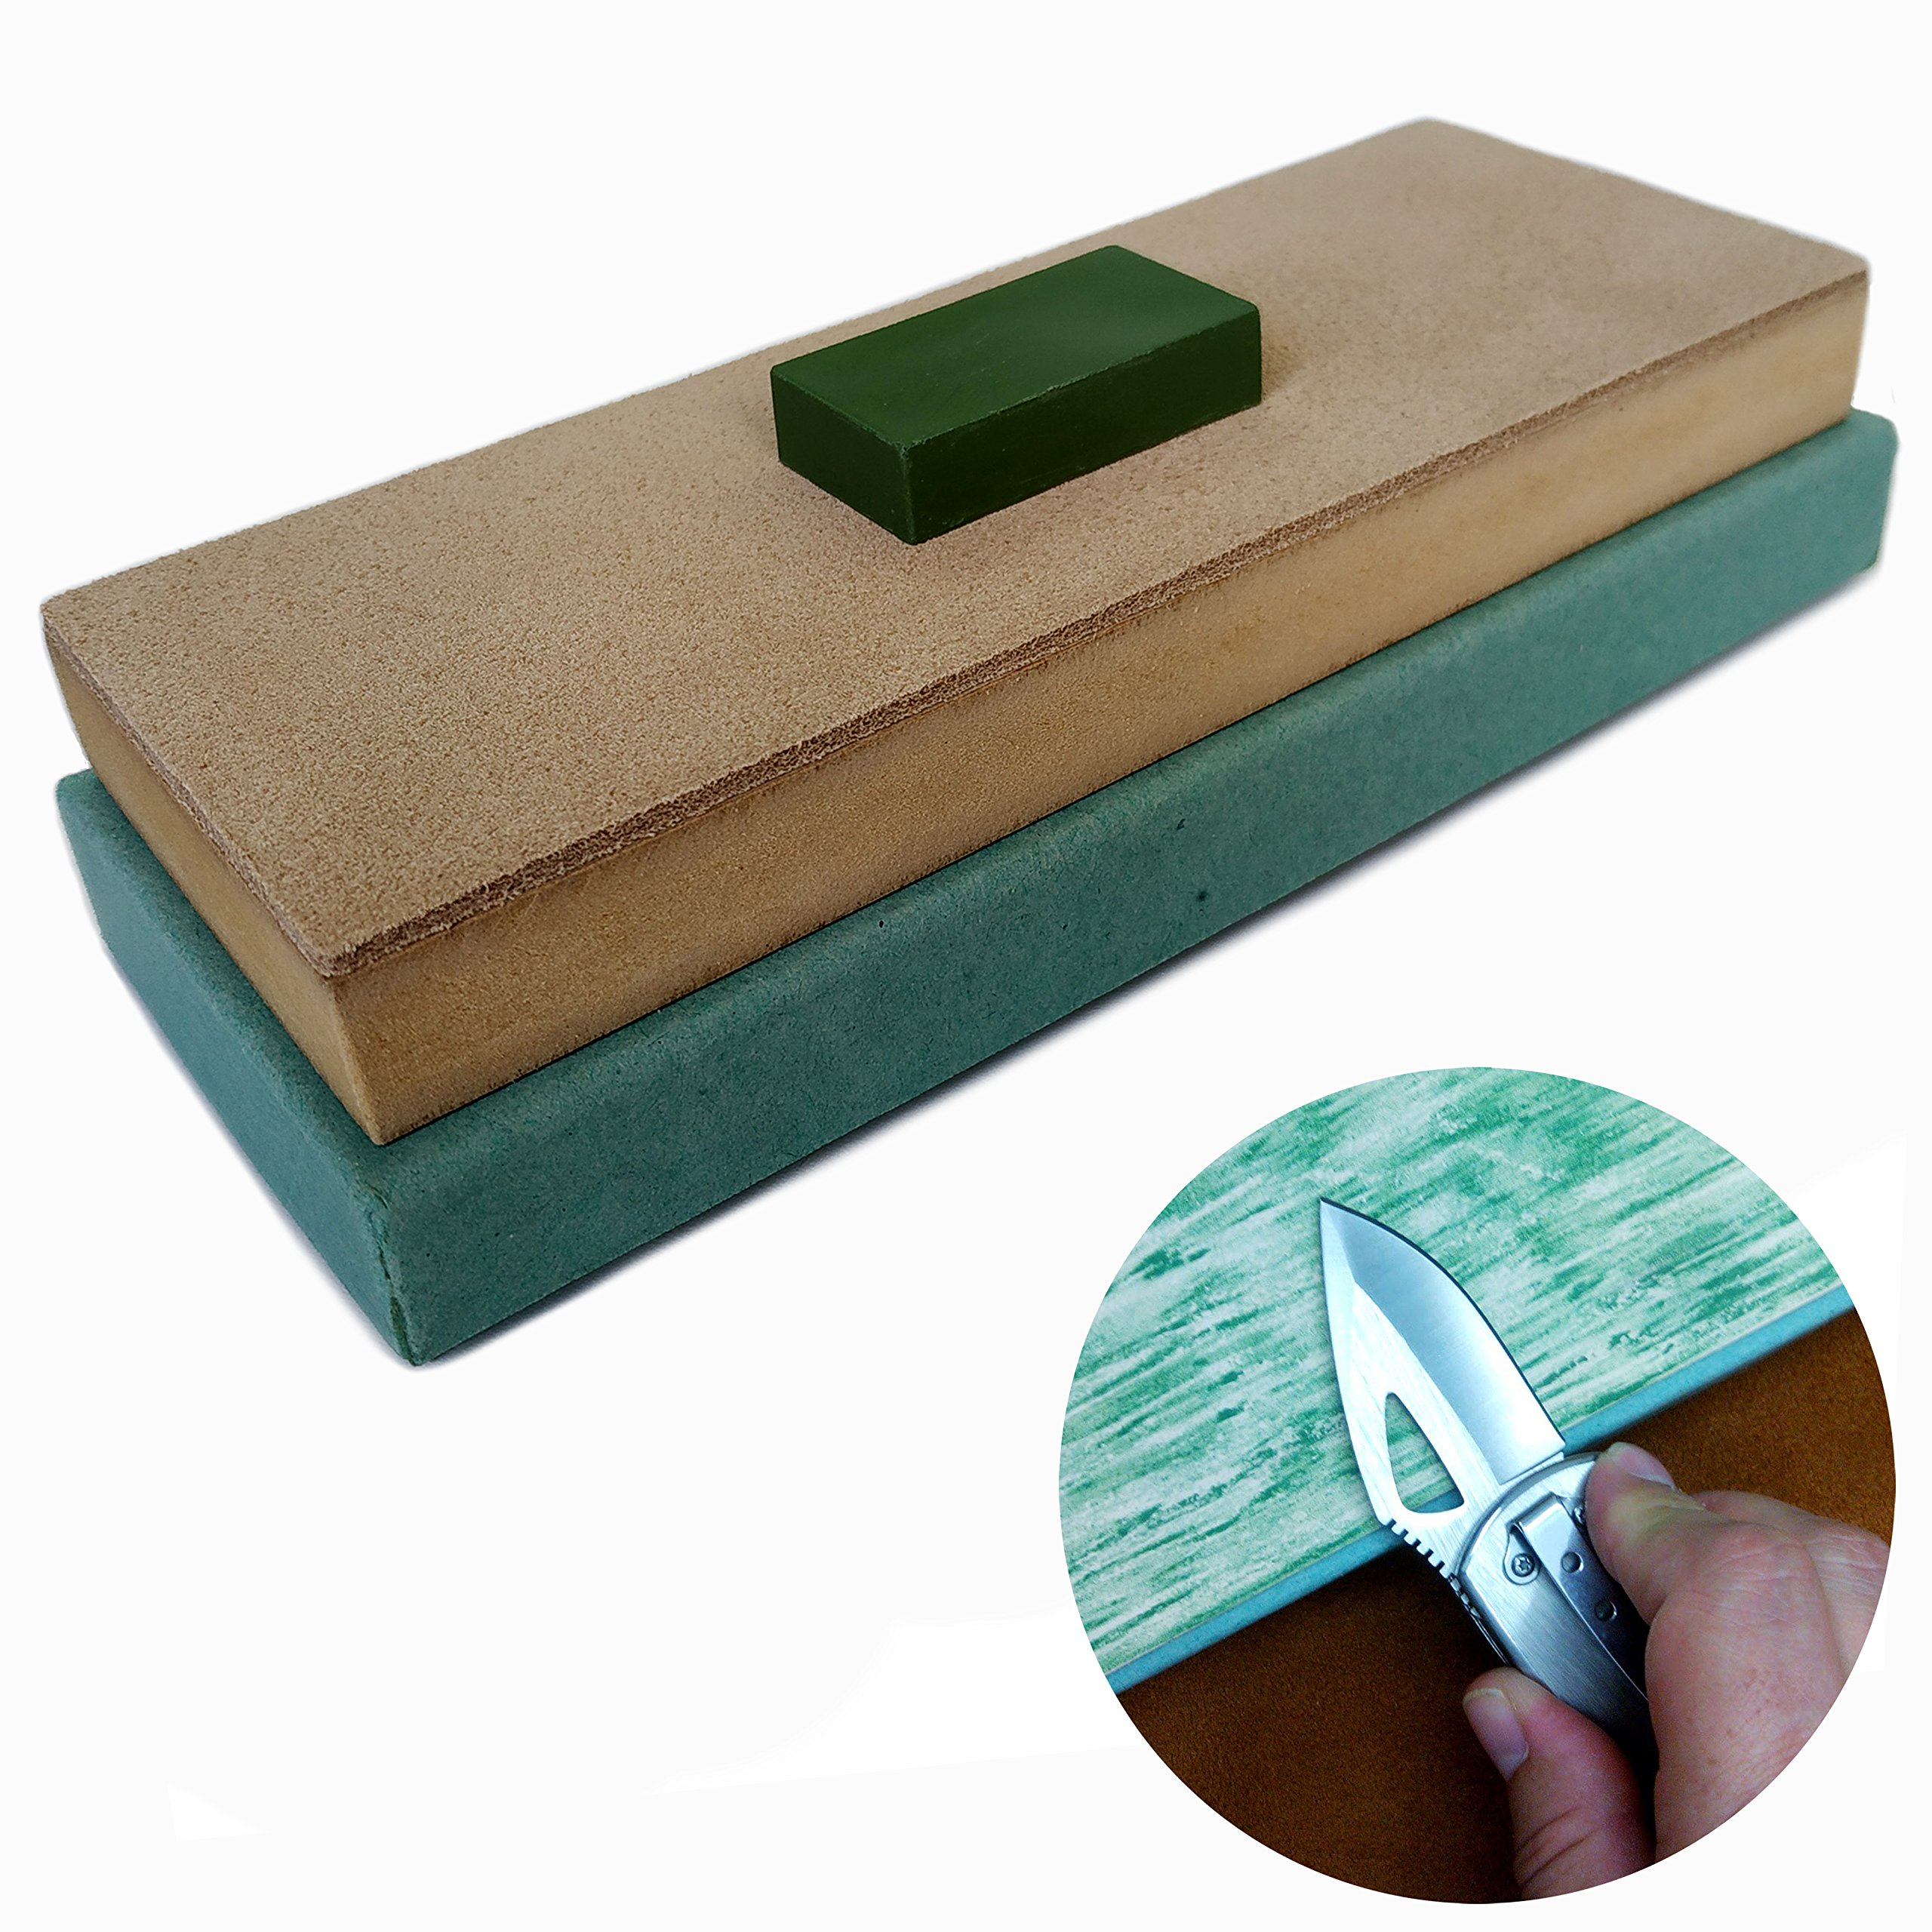 Hestya 3 Pieces Leather Strop with Compounds Kit 1 Piece Leather Honing Strop 2